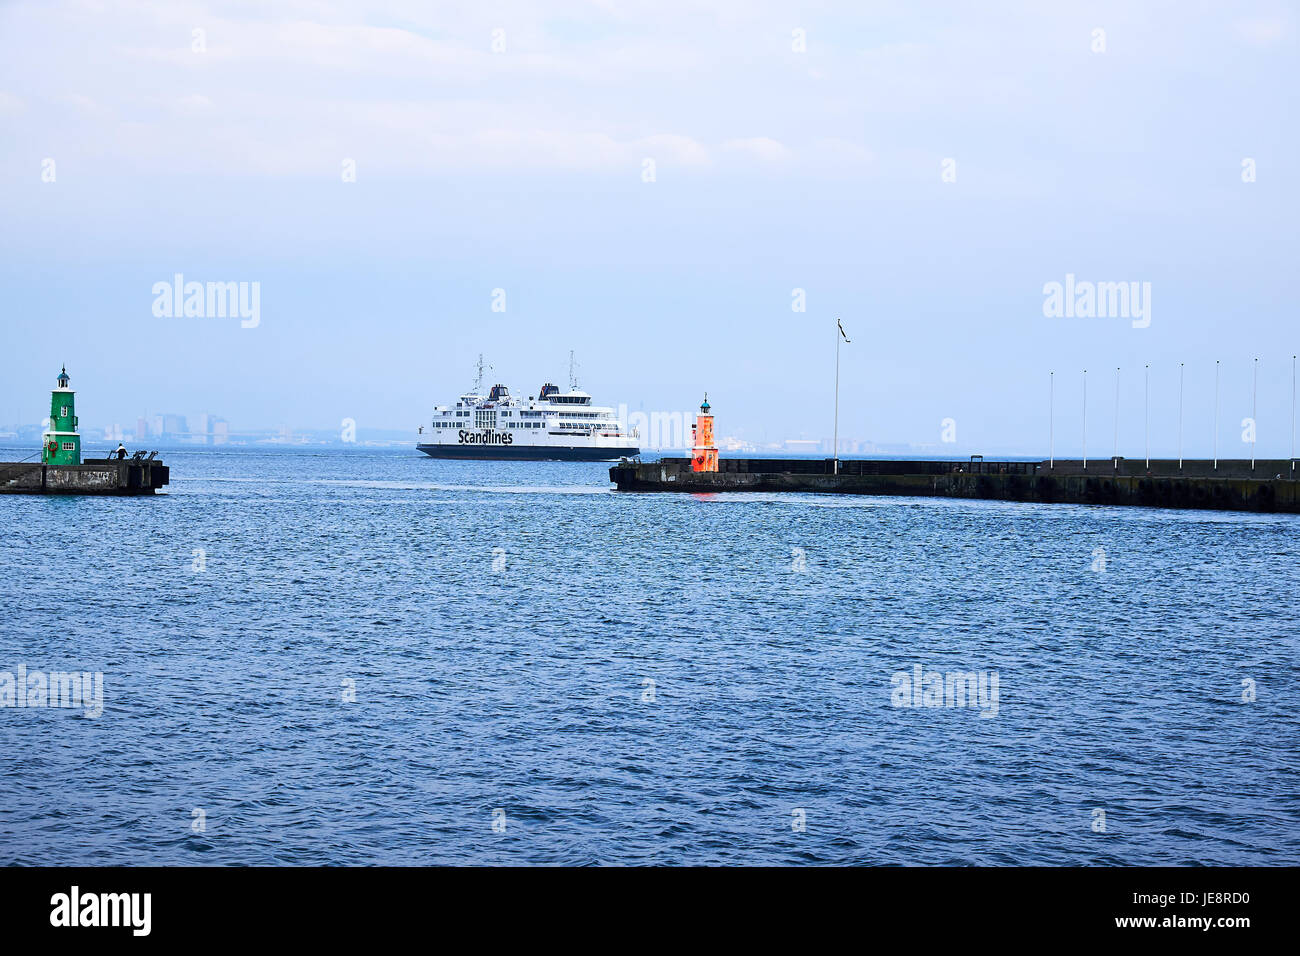 ELSINORE, DENMARK - APRIL 30, 2016: Ferry from the company Scandlines just outside Elsinore harbor, on its way to - Stock Image